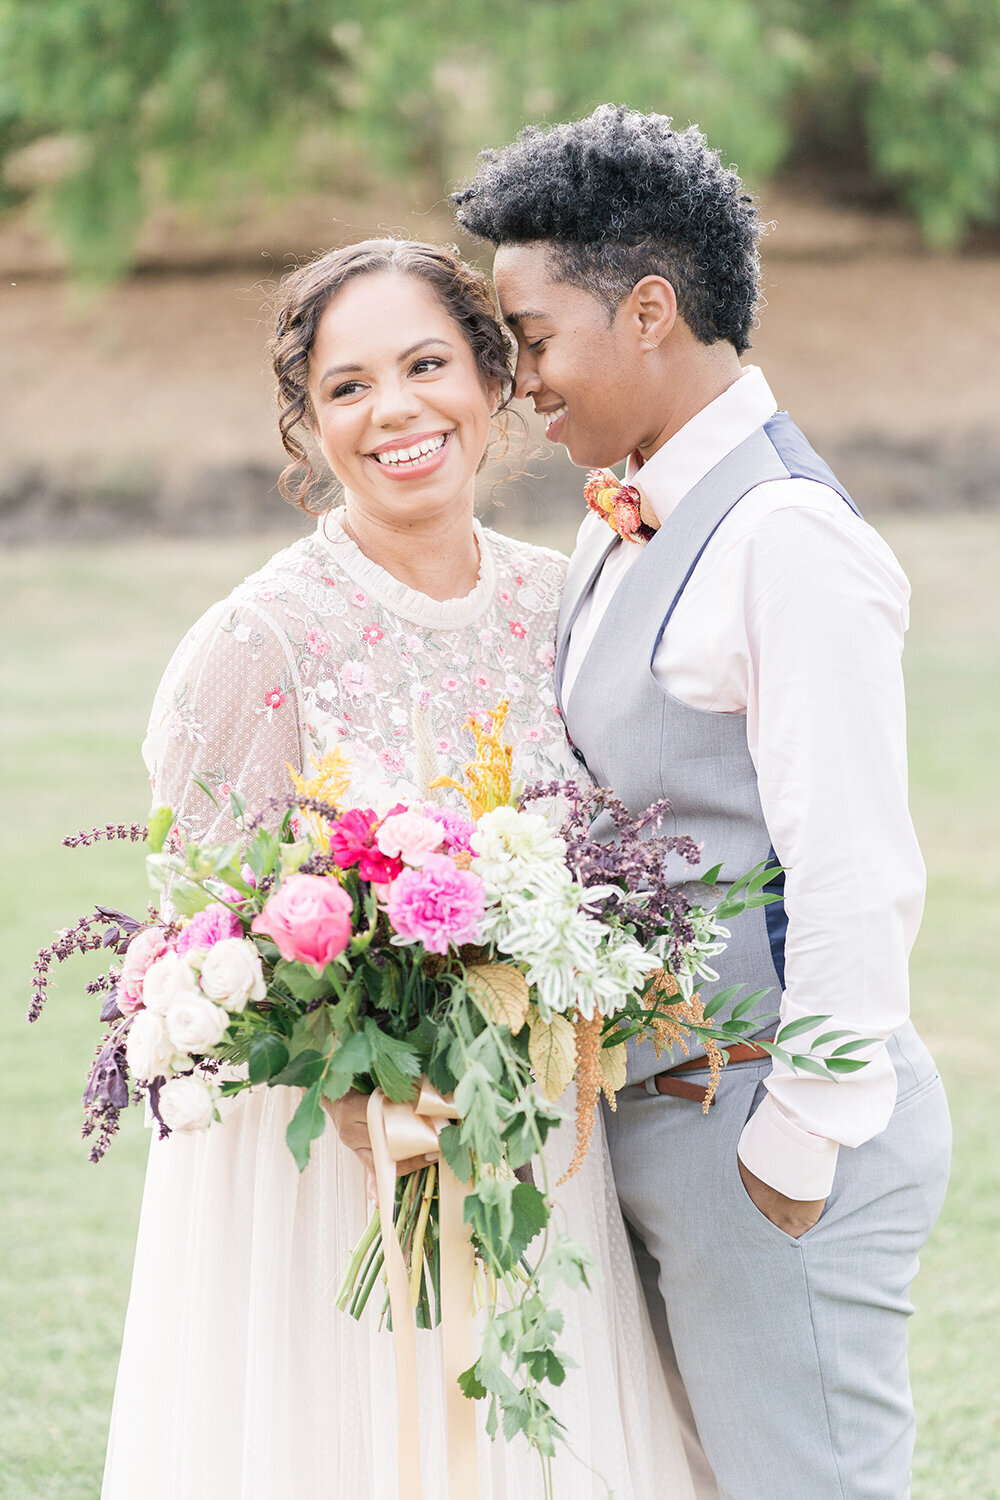 An lgbtq couple poses for portraits at the private estate micro wedding by Adrienne and Dani Photography